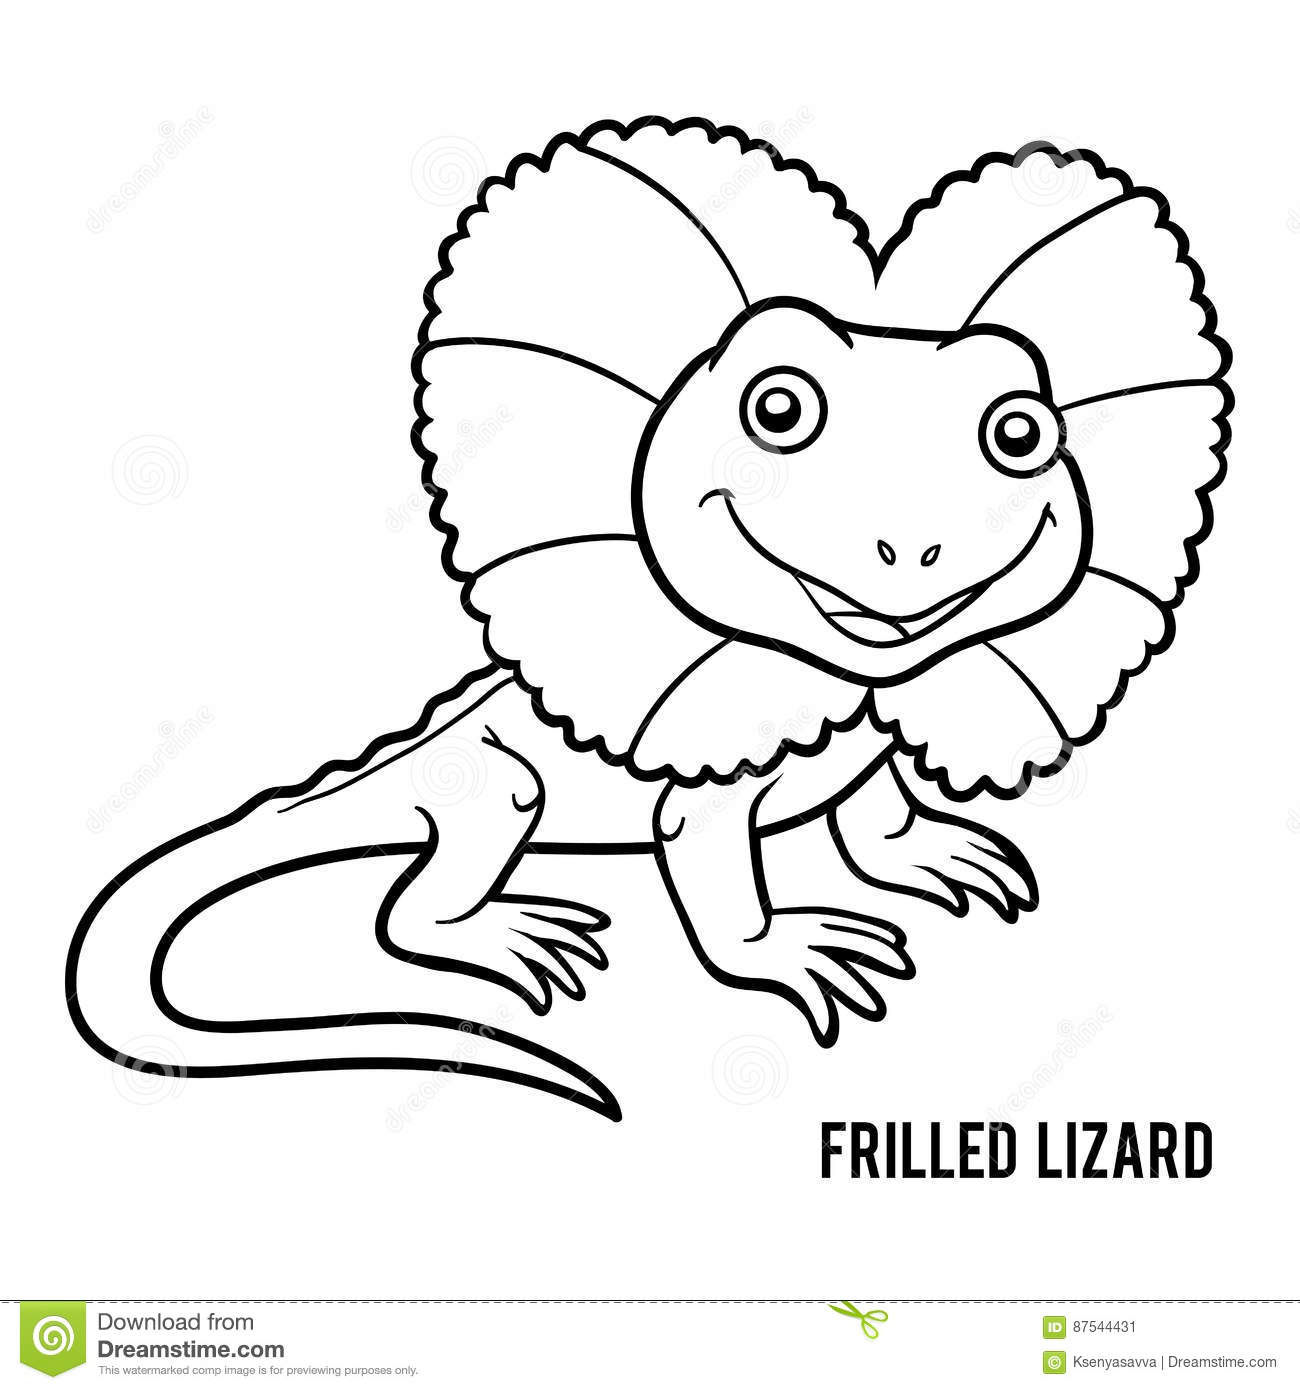 Frilled Lizard Coloring Pages